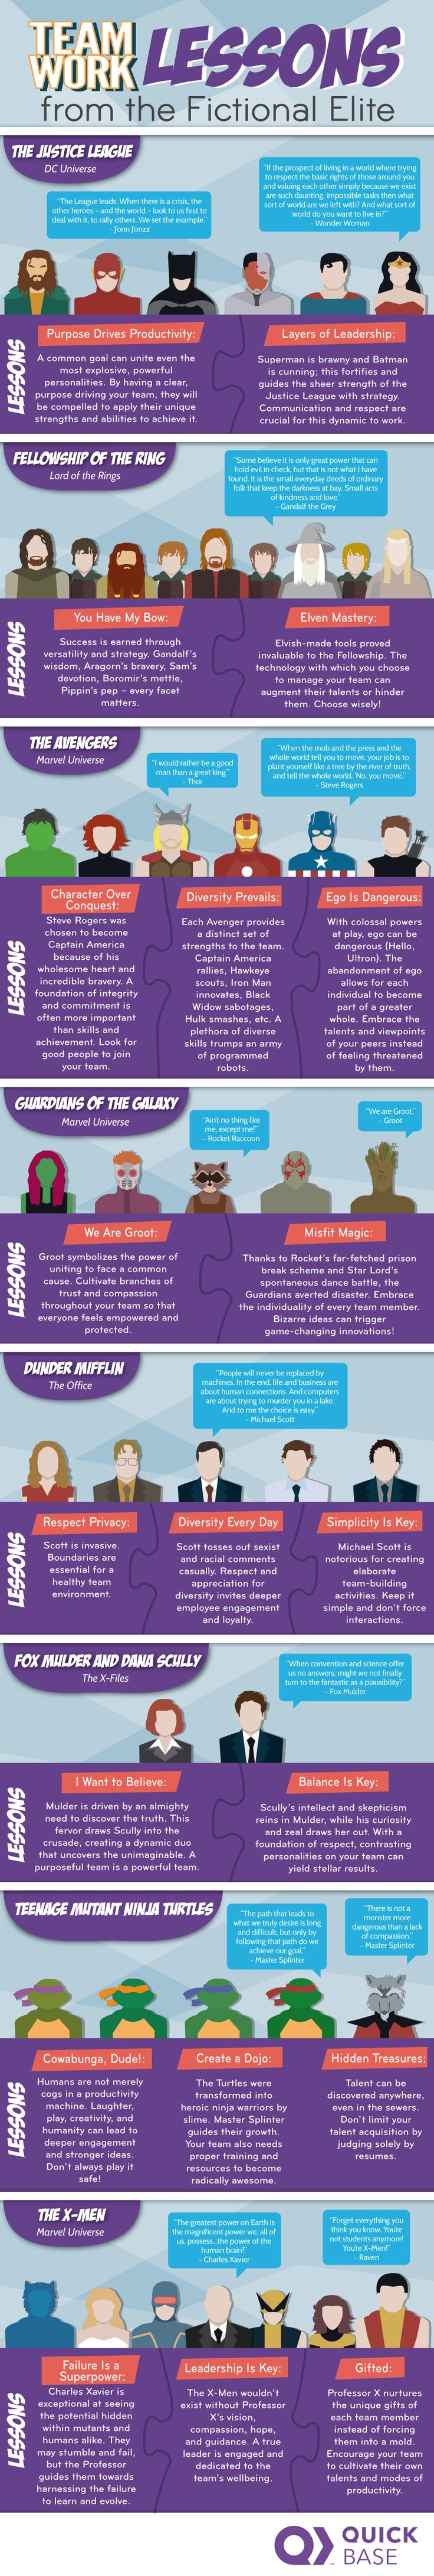 Fictional teams and their wisdoms #infographic http://bit.ly/2mvUxoF